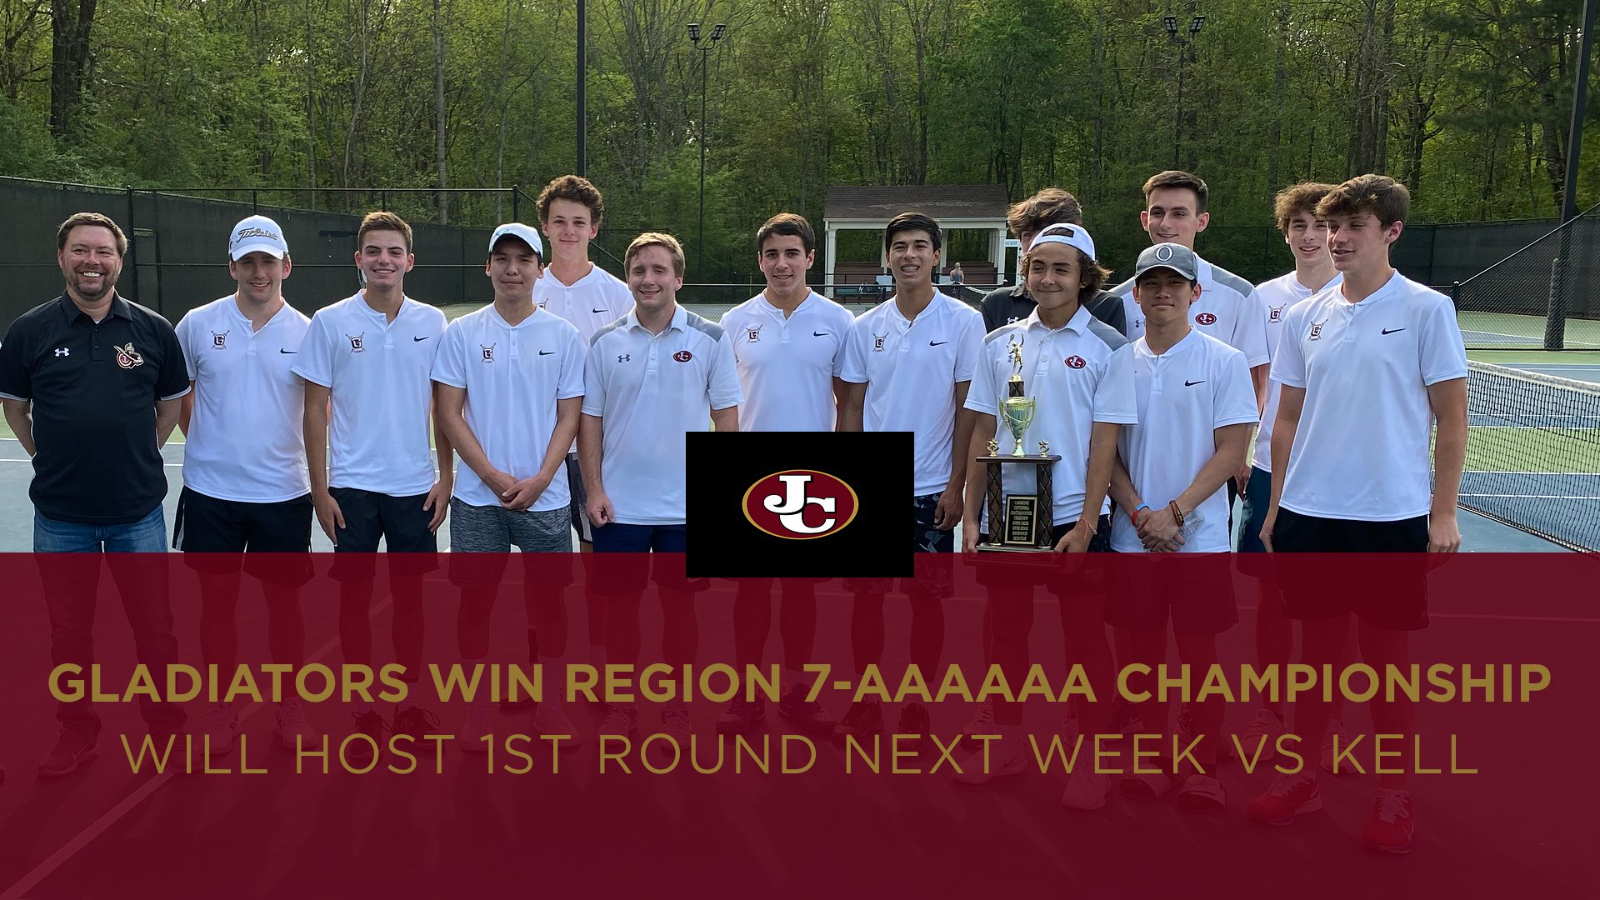 Gladiators capture their 3rd straight Region 7-AAAAAA Championship